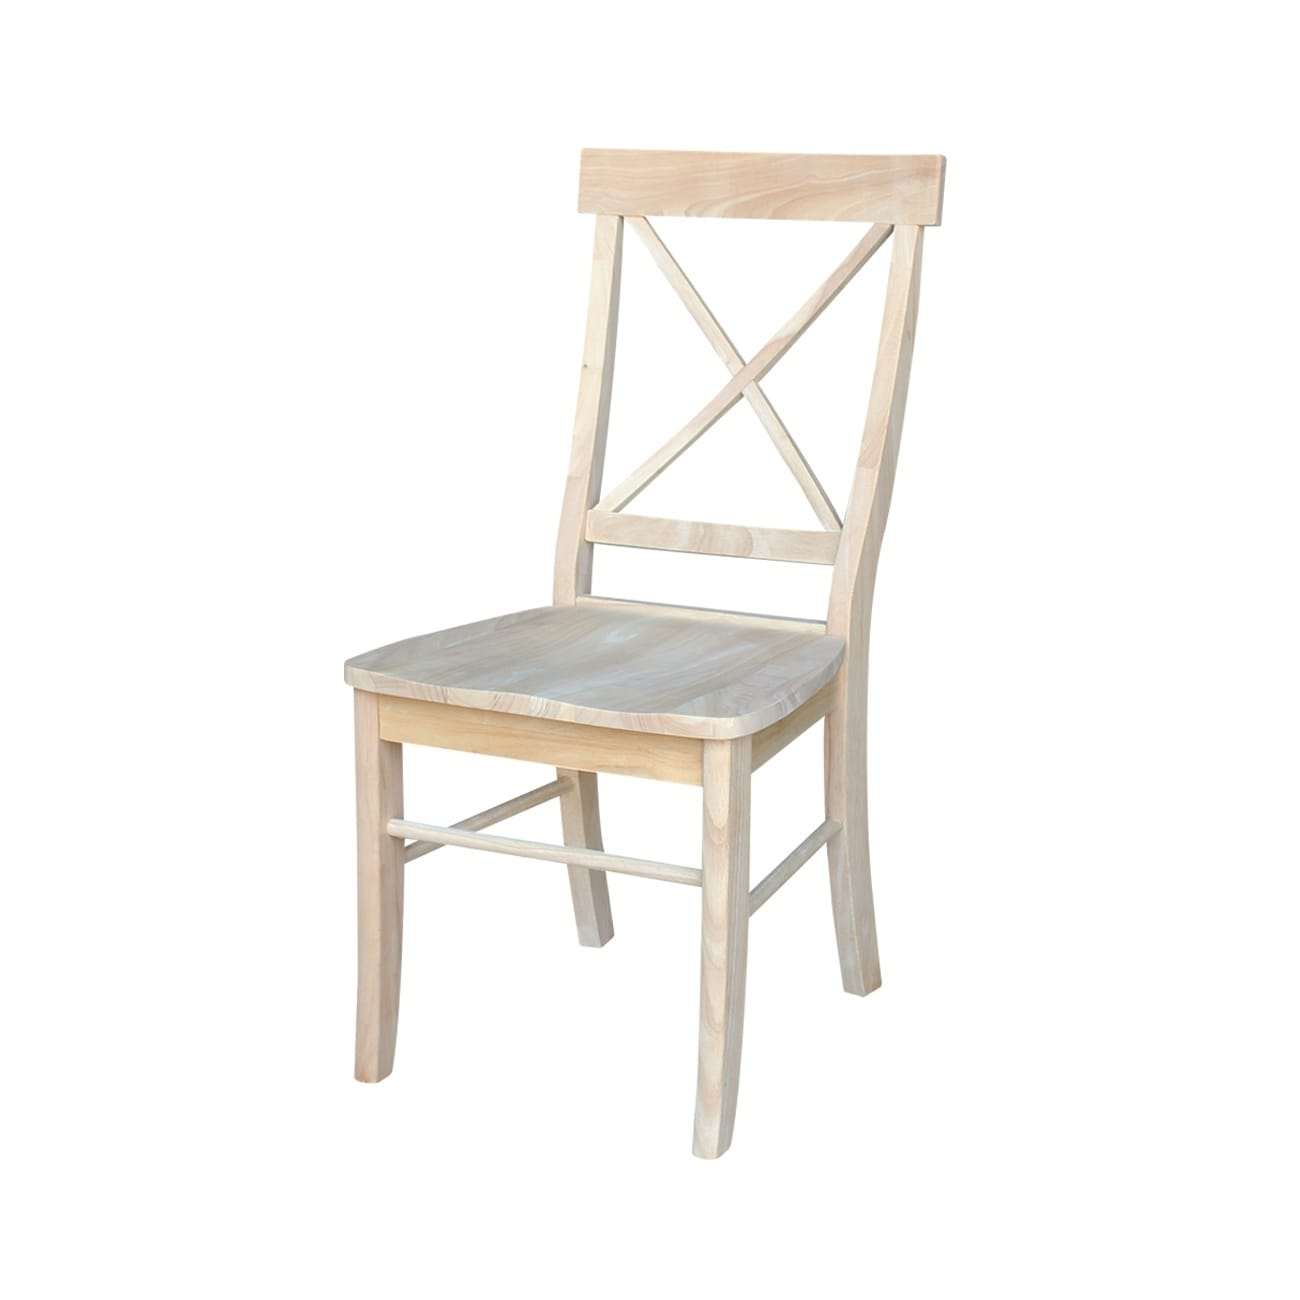 Shop international concepts unfinished solid parawood x back dining chairs set of 2 free shipping today overstock com 9252552